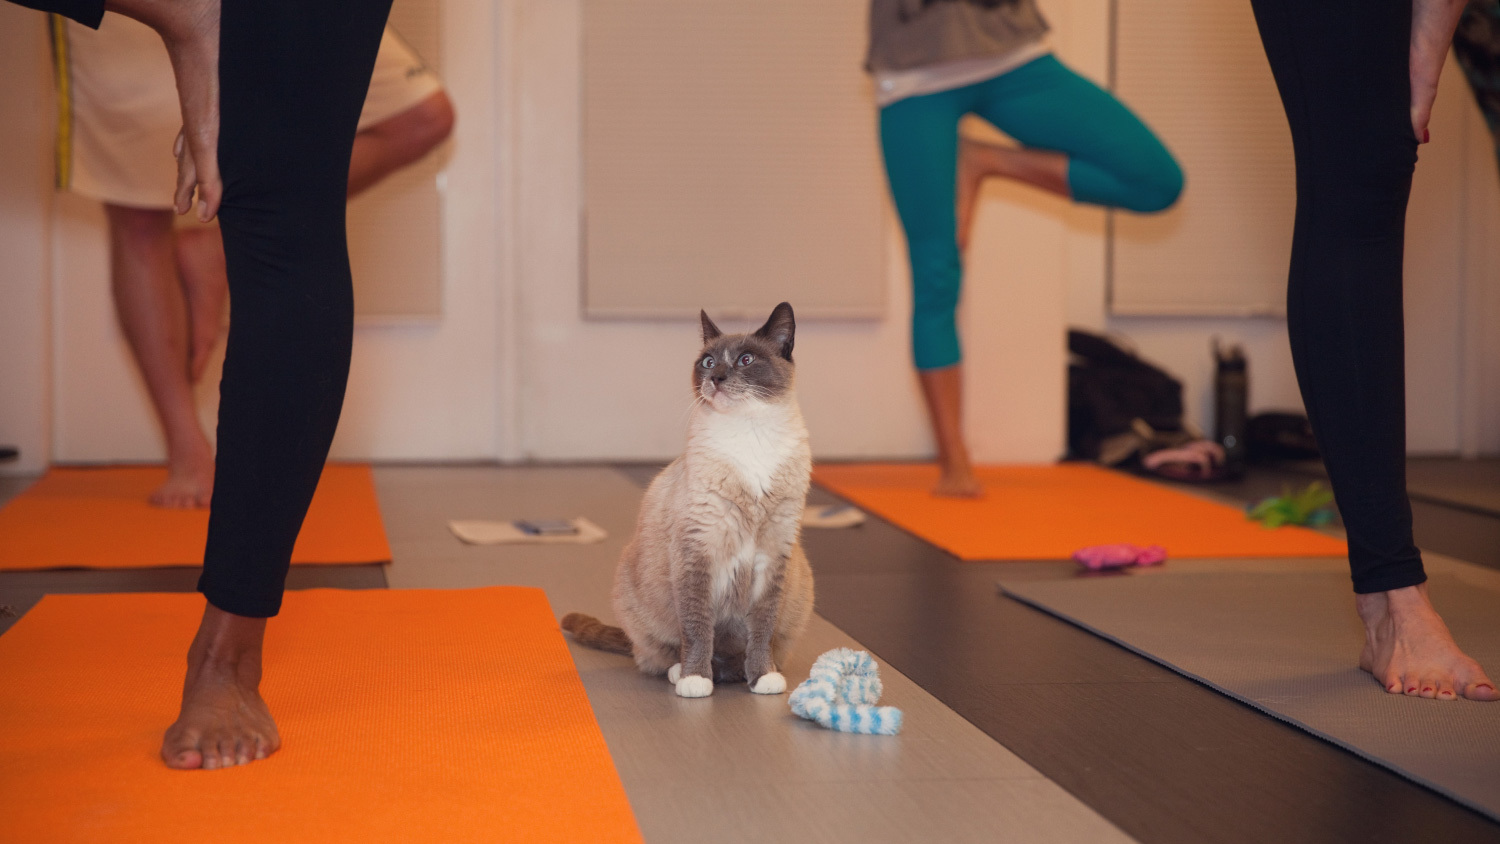 You can take a yoga class with adoptable cats—here's what it looks like